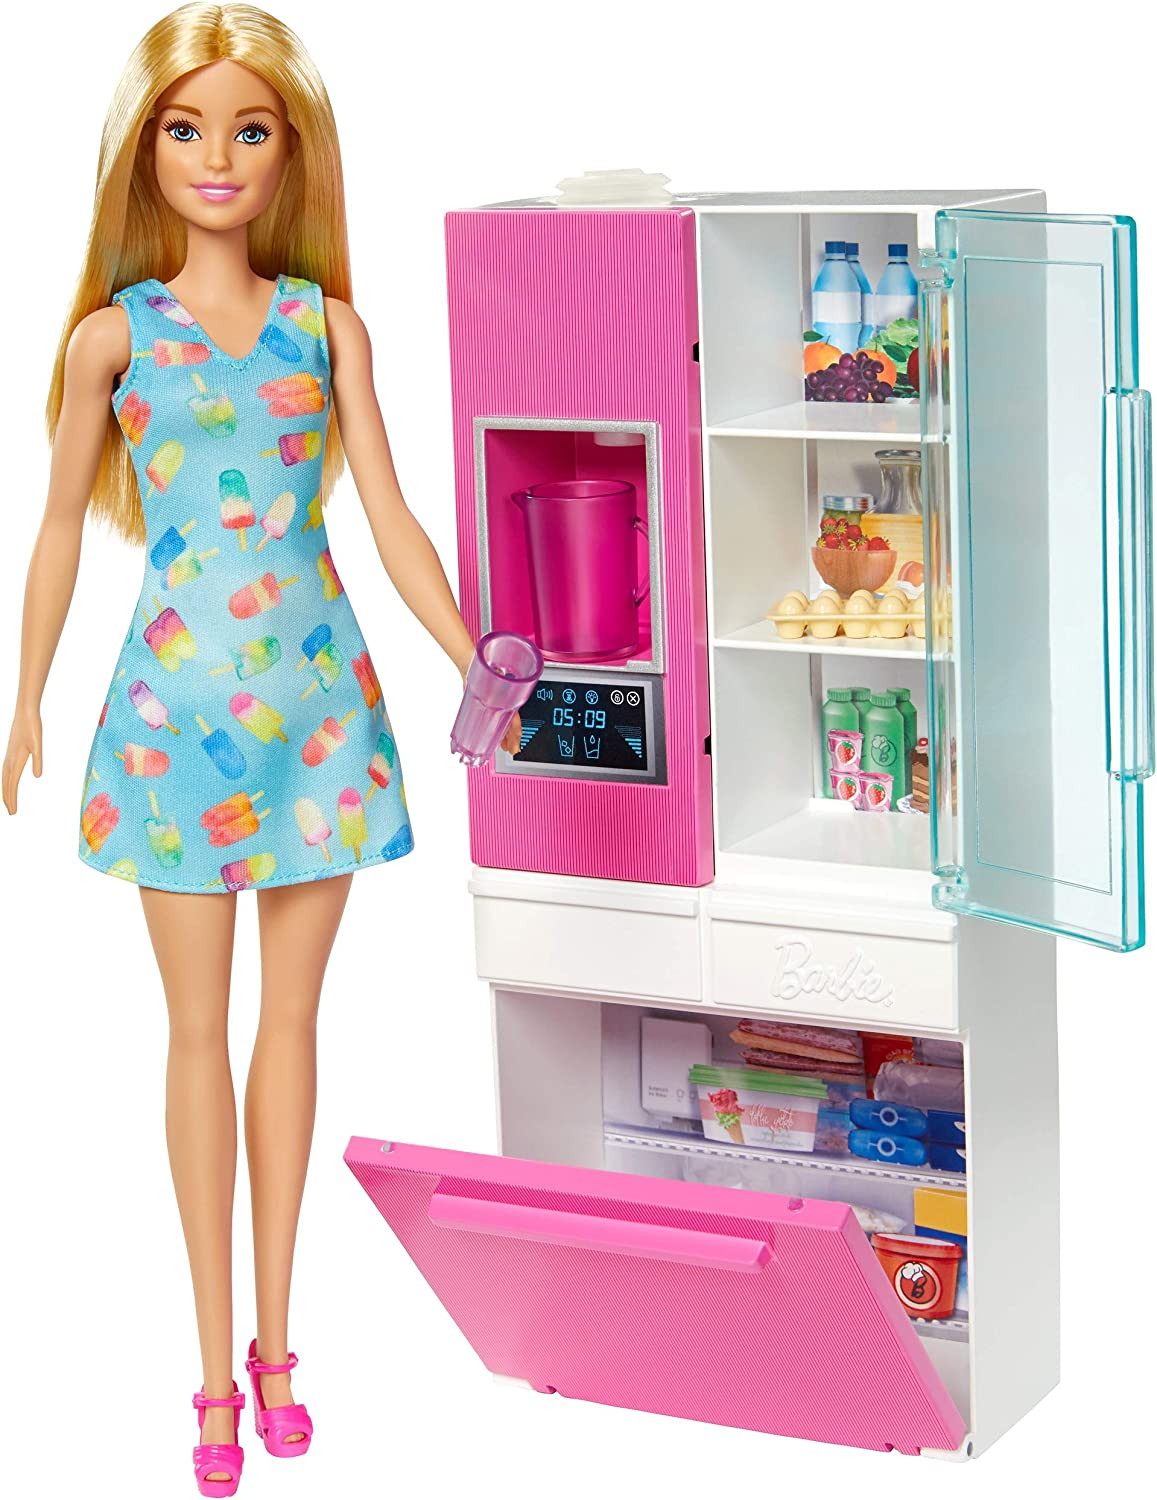 ?Barbie Doll, 11.5-in Blonde, and Furniture Set, Refrigerator with Working Water Dispenser and Three Kitchen Accessories, Gift for 3 to 7 Year Olds